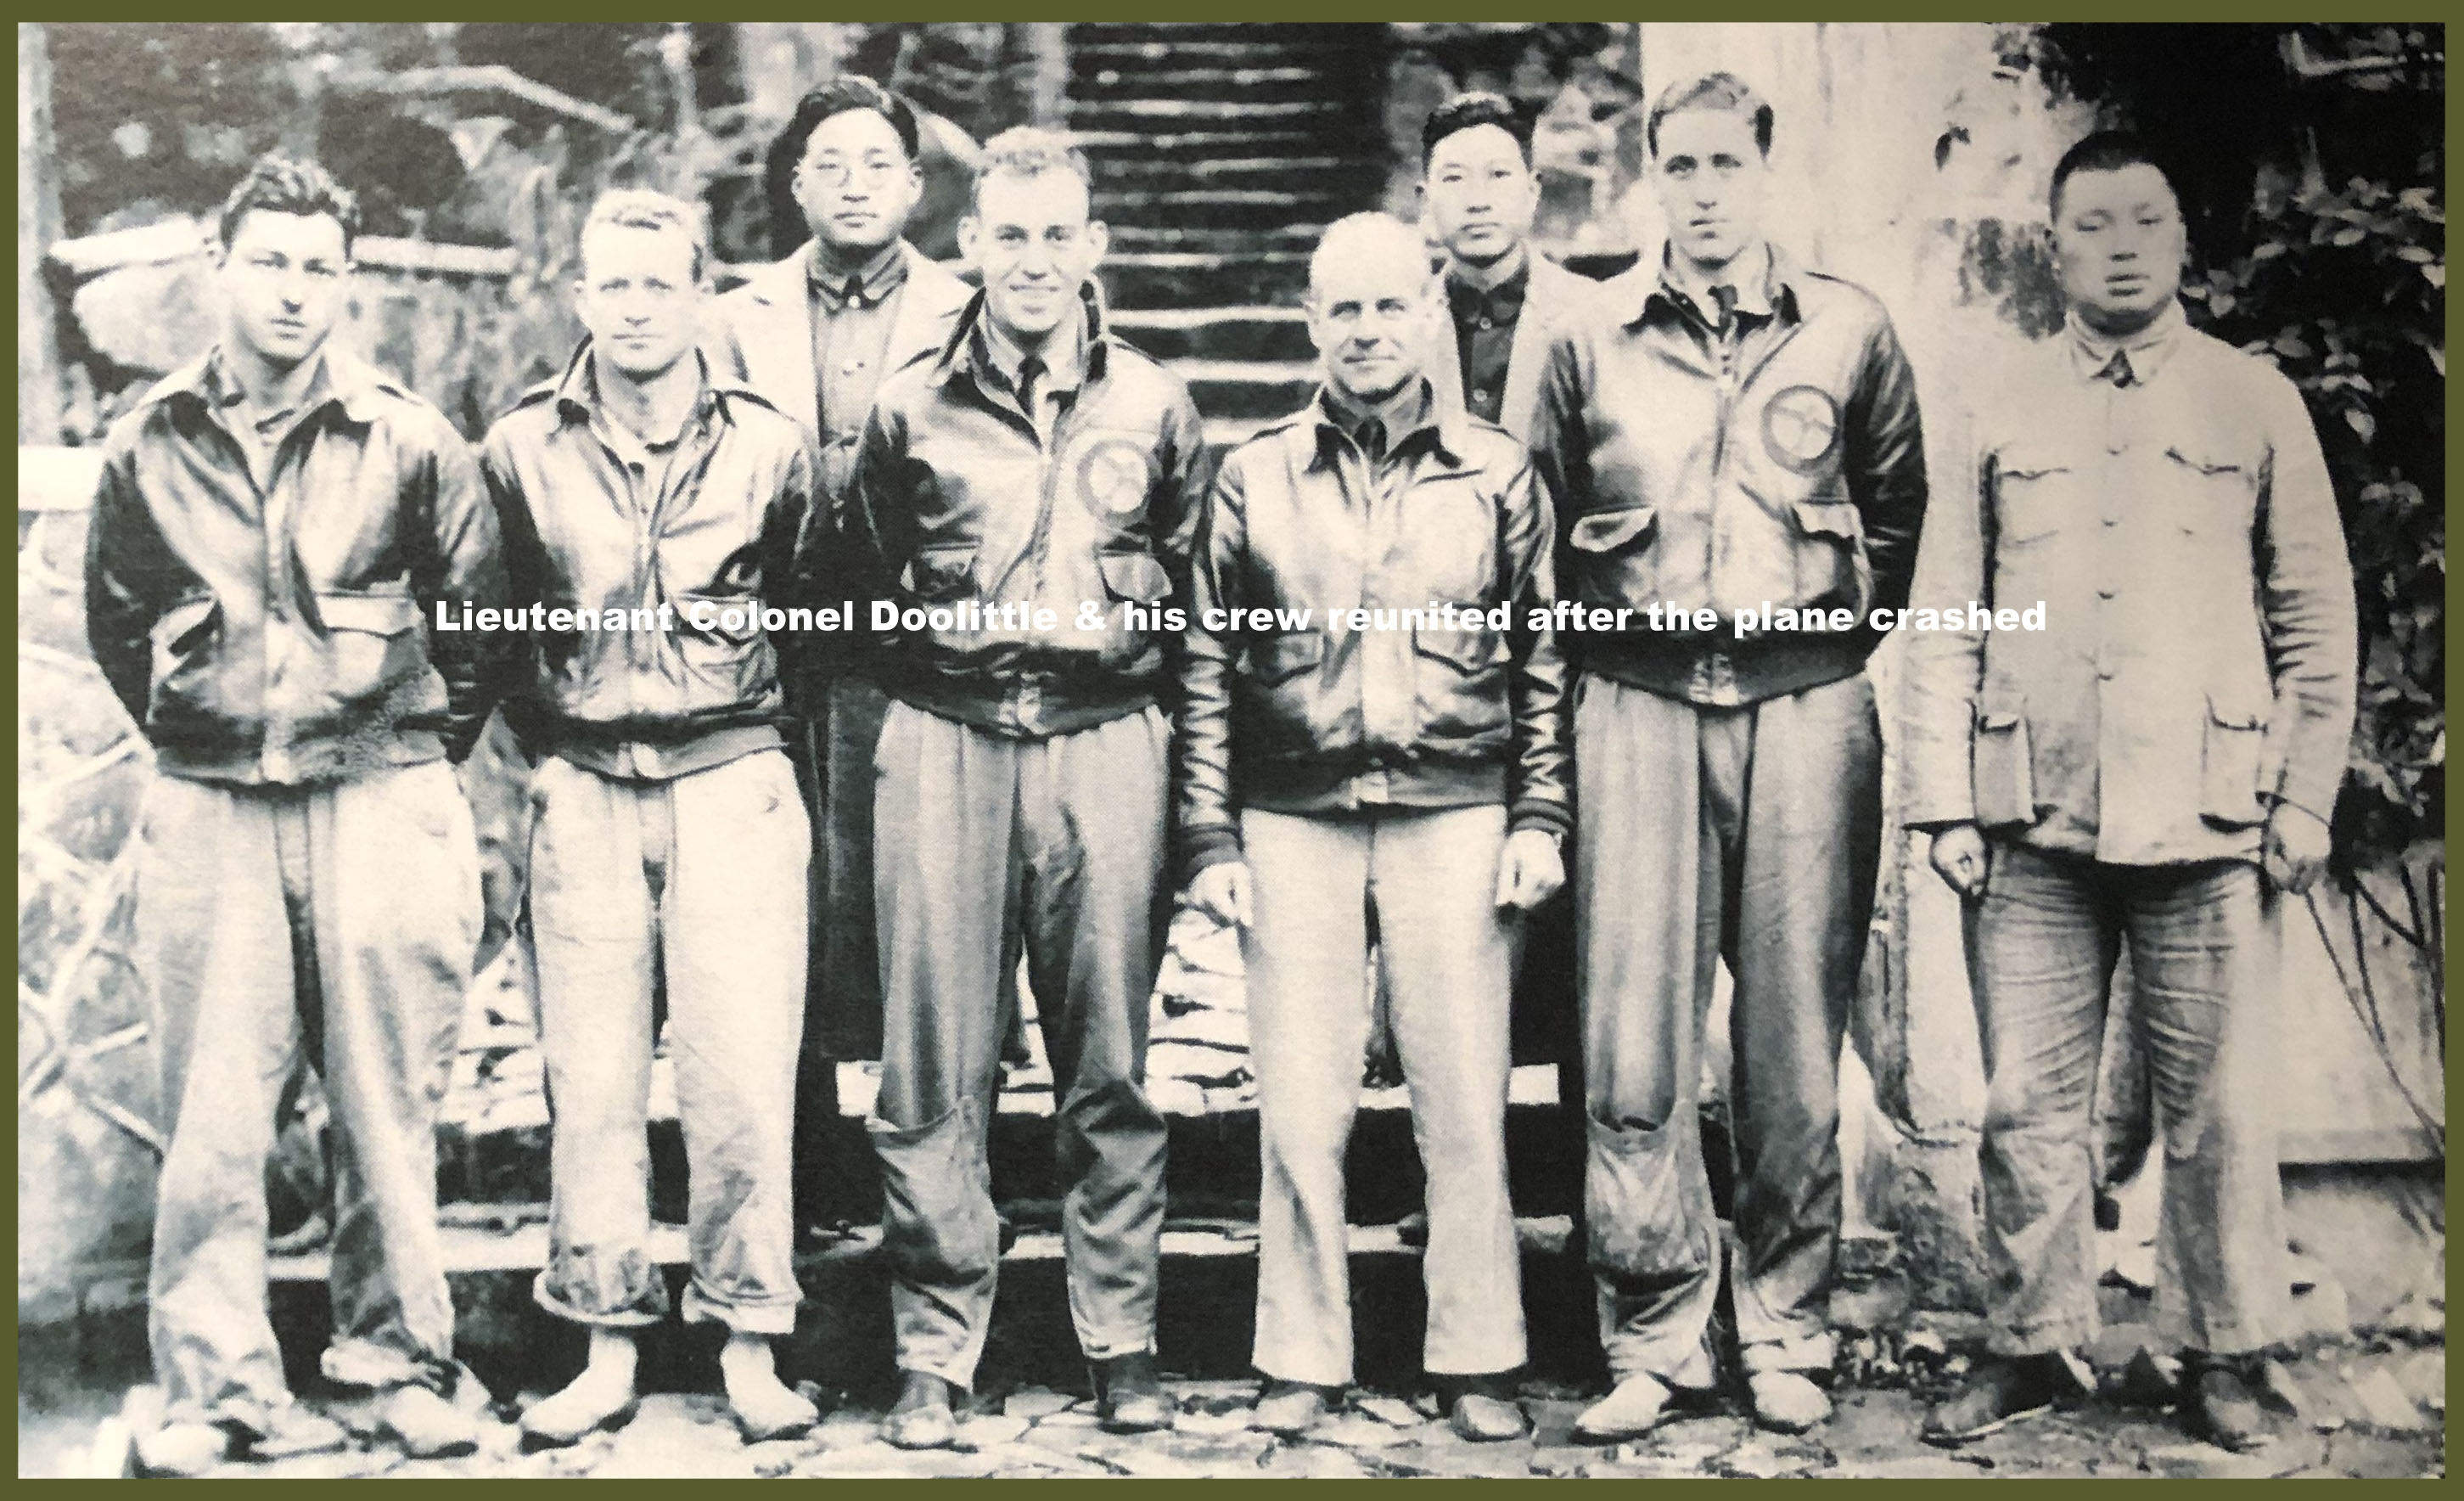 Lieutenant Colonel Doolittle (fourth from right) and his crew reunited after the plane crashed